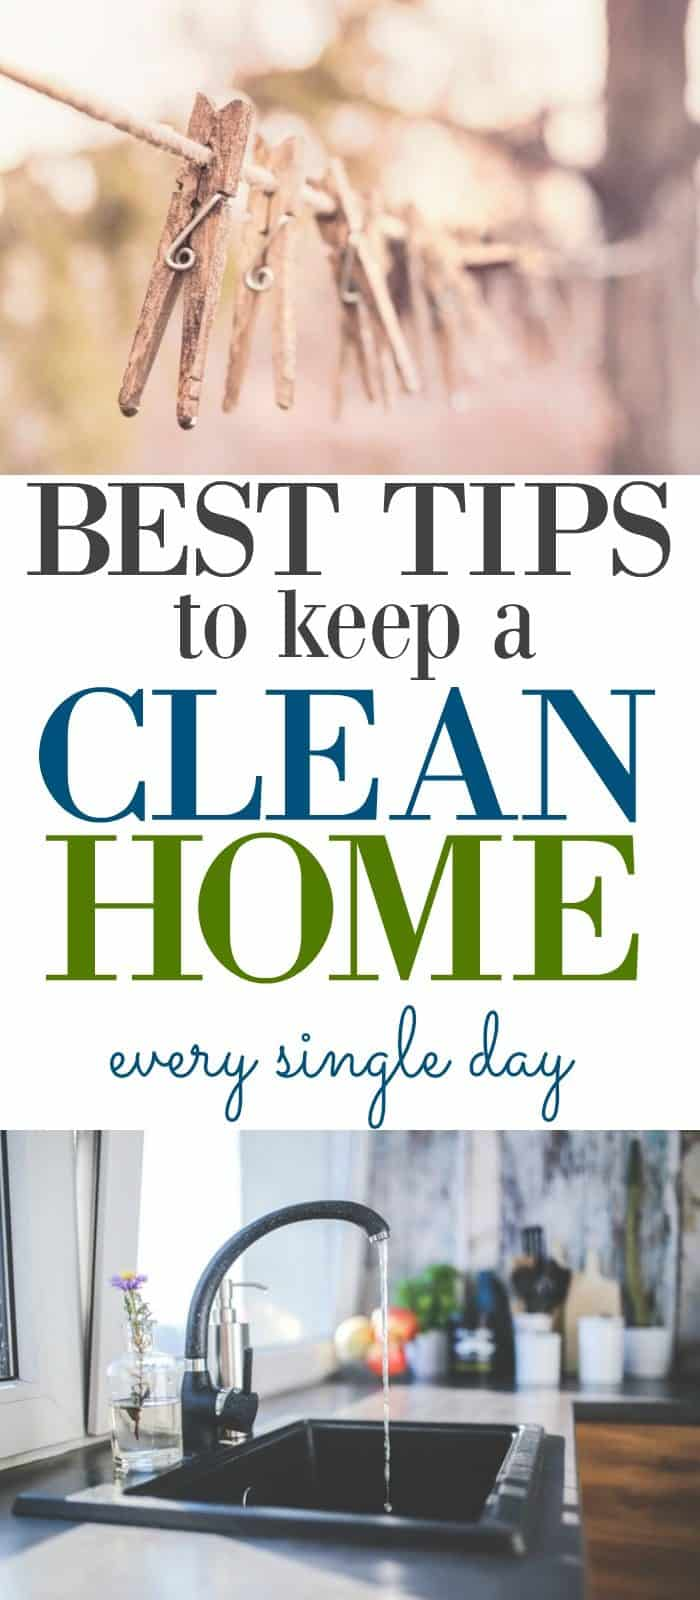 Home Cleaning Routine / Best tips for keeping a clean home while staying sane.